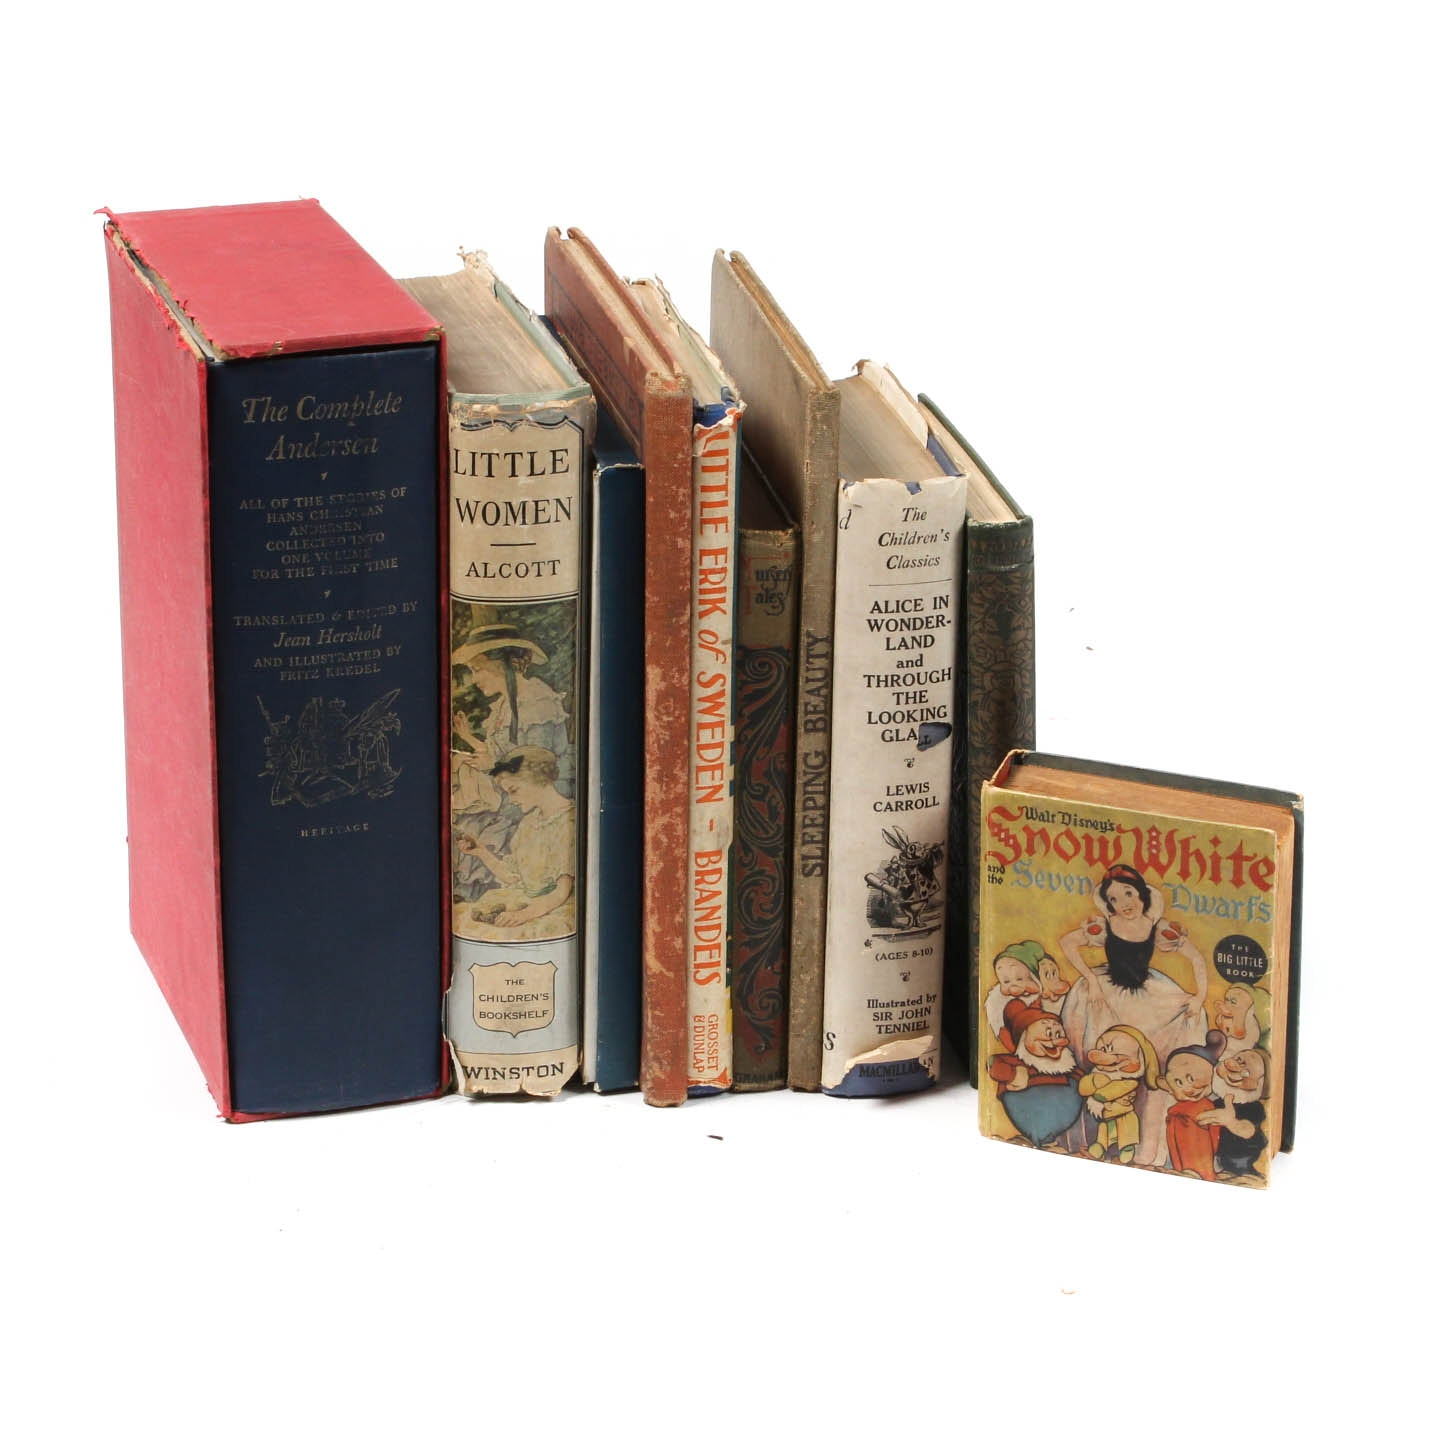 Antique and Vintage Children's Books